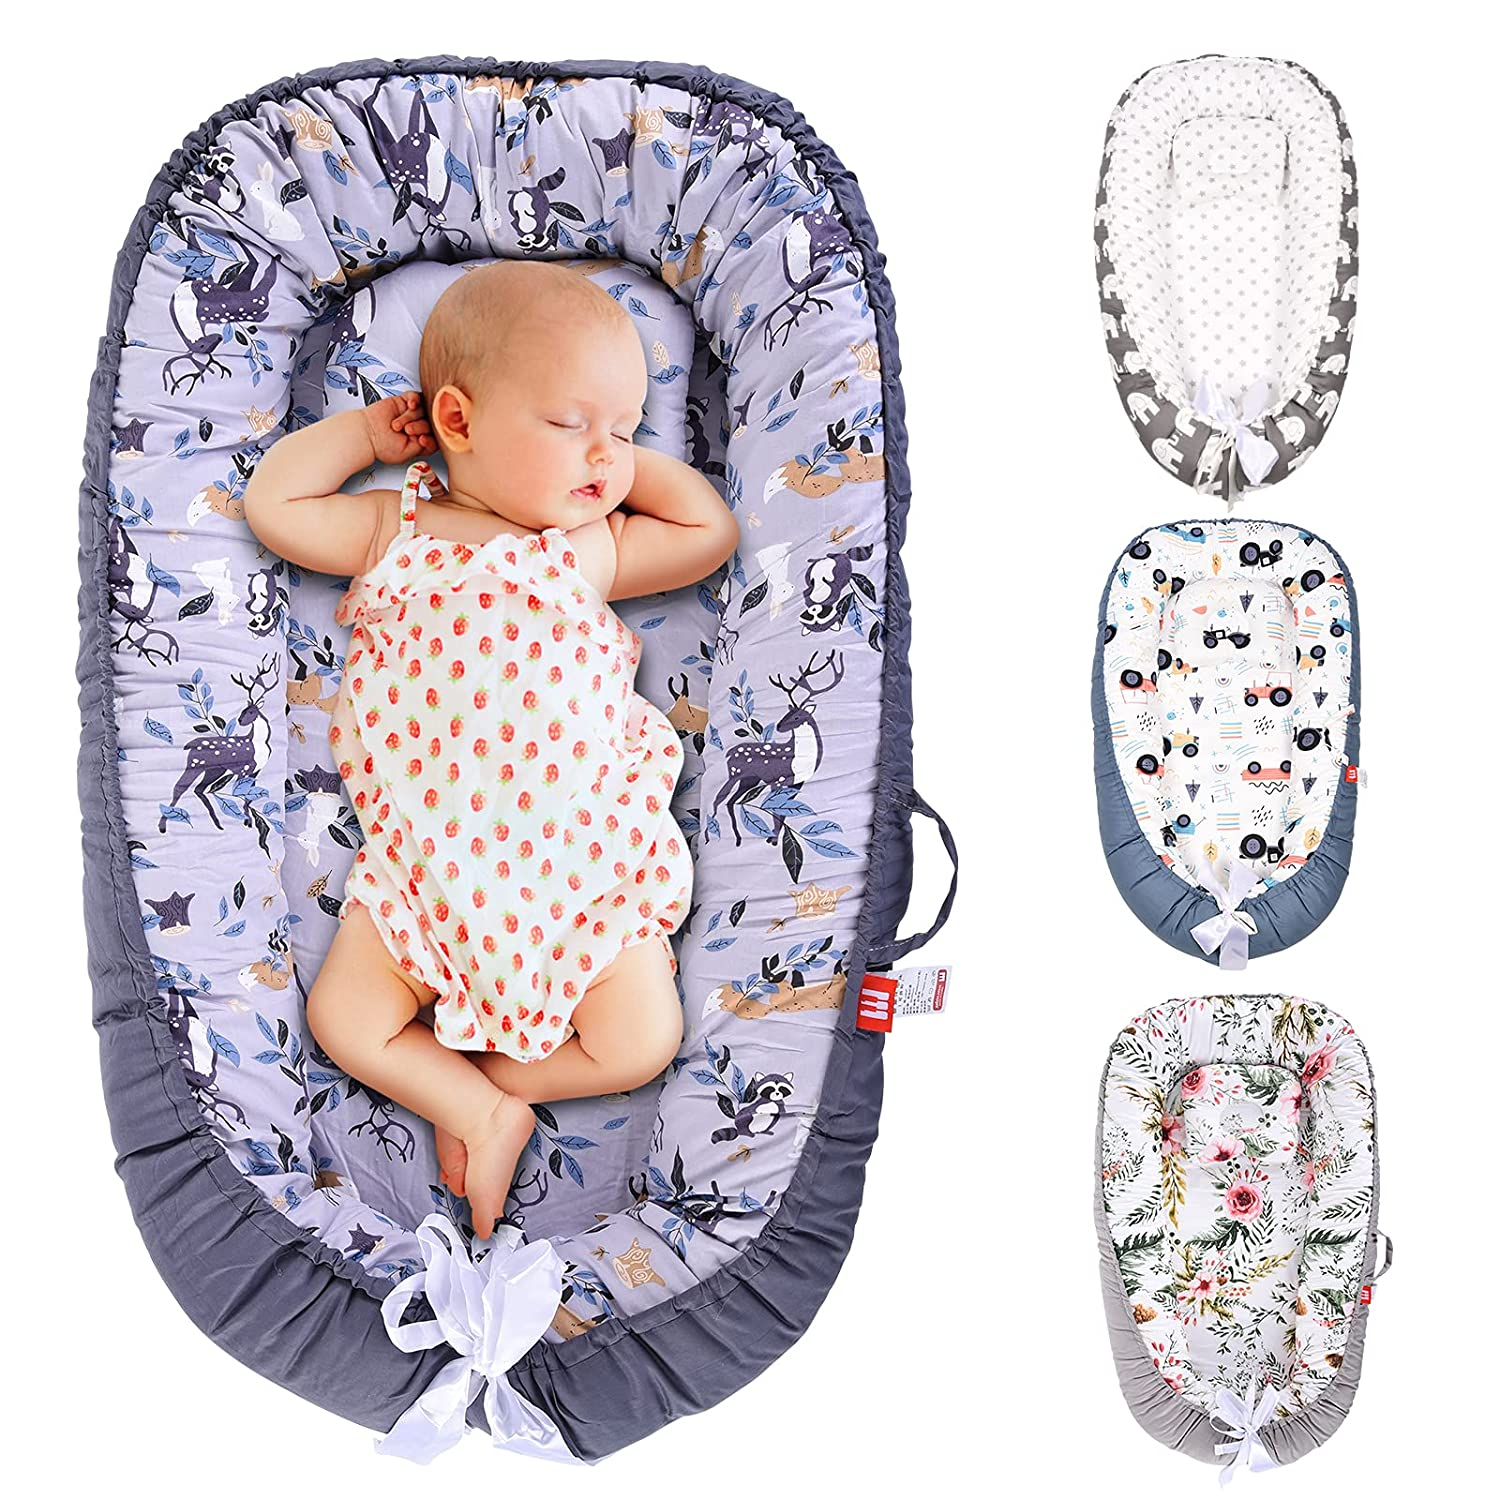 SMTTW Baby Nest Lounger Co Max 66% OFF for Bassinet low-pricing Sleeping Newb